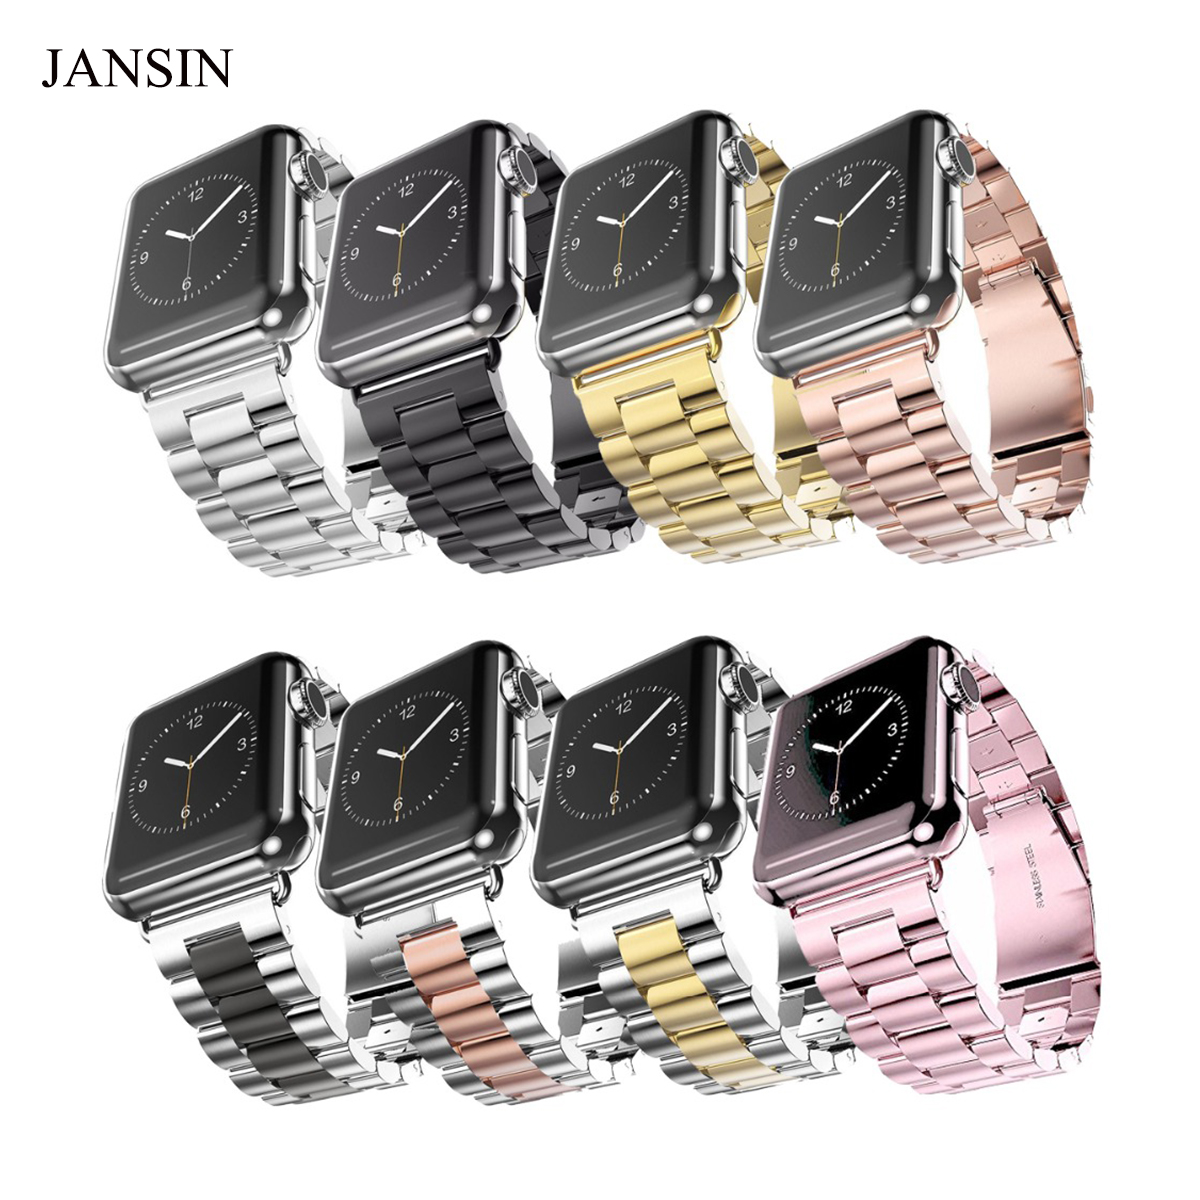 For Apple Watch Band, JANSIN Stainless Steel Metal Watch Strap Replacement iWatch Strap for Apple Watch 38mm/42mm Series 3 2 1 luxury ladies watch strap for apple watch series 1 2 3 wrist band hand made by crystal bracelet for apple watch series iwatch